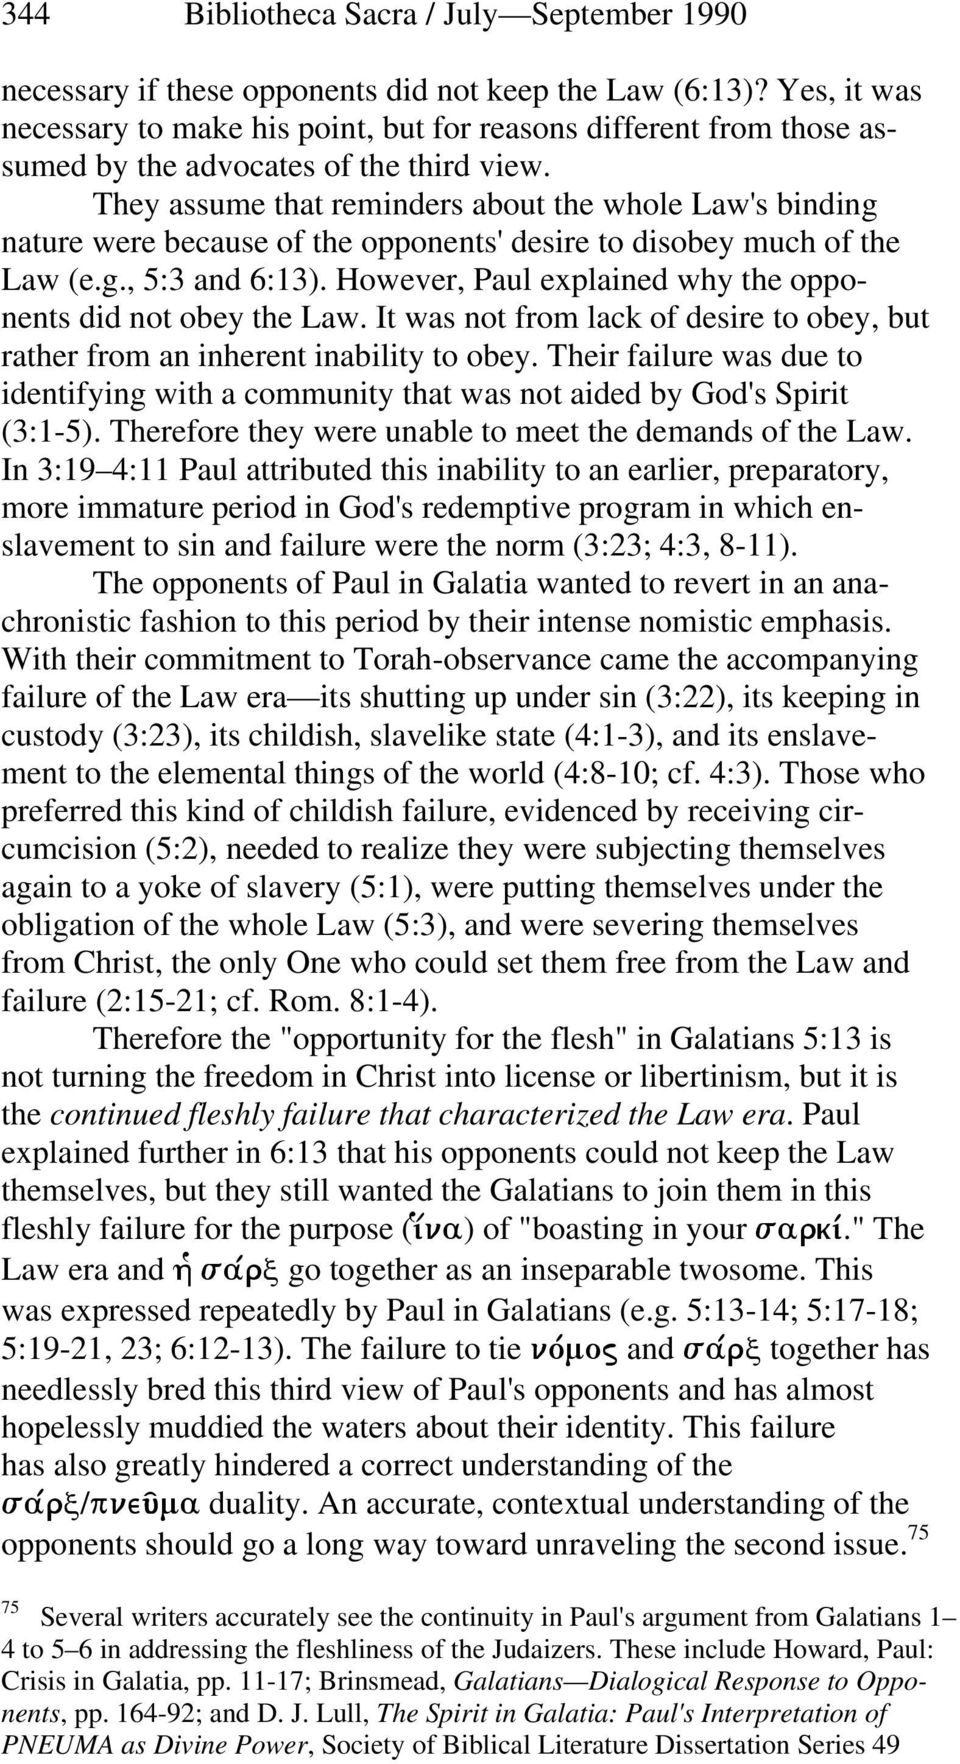 They assume that reminders about the whole Law's binding nature were because of the opponents' desire to disobey much of the Law (e.g., 5:3 and 6:13).